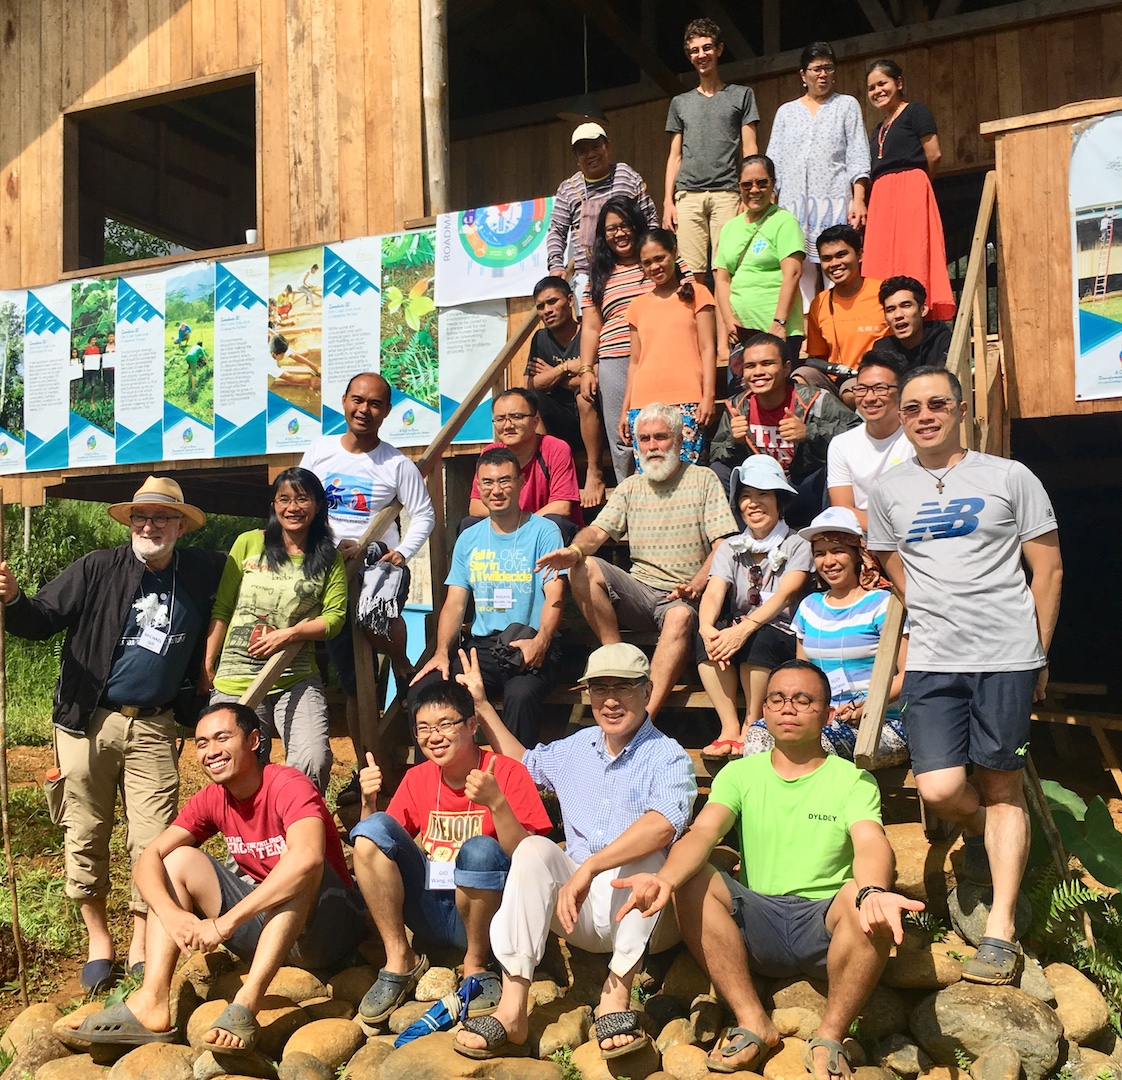 An enormous workshop experience and reflection on Living Laudato Si'